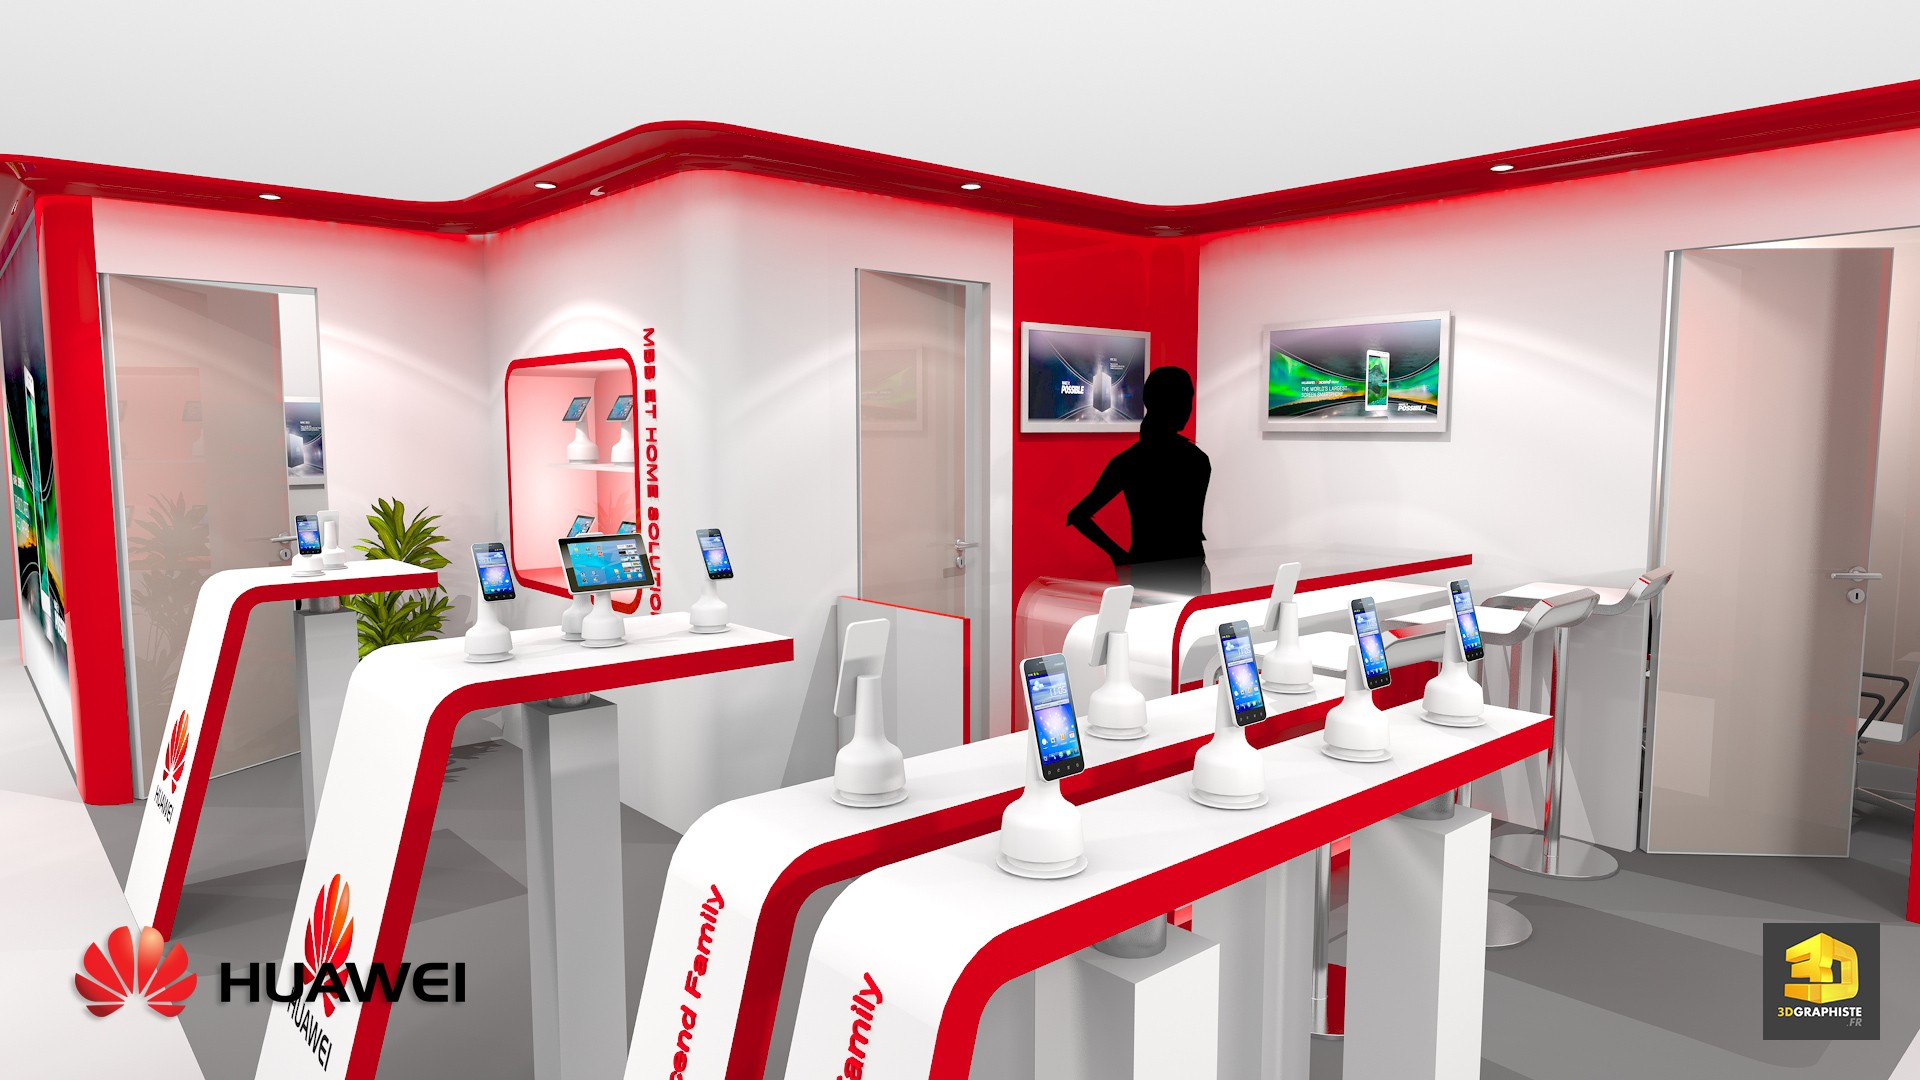 Stand huawei stand pour salon professionnel 3dgraphiste fr for Salon exposition